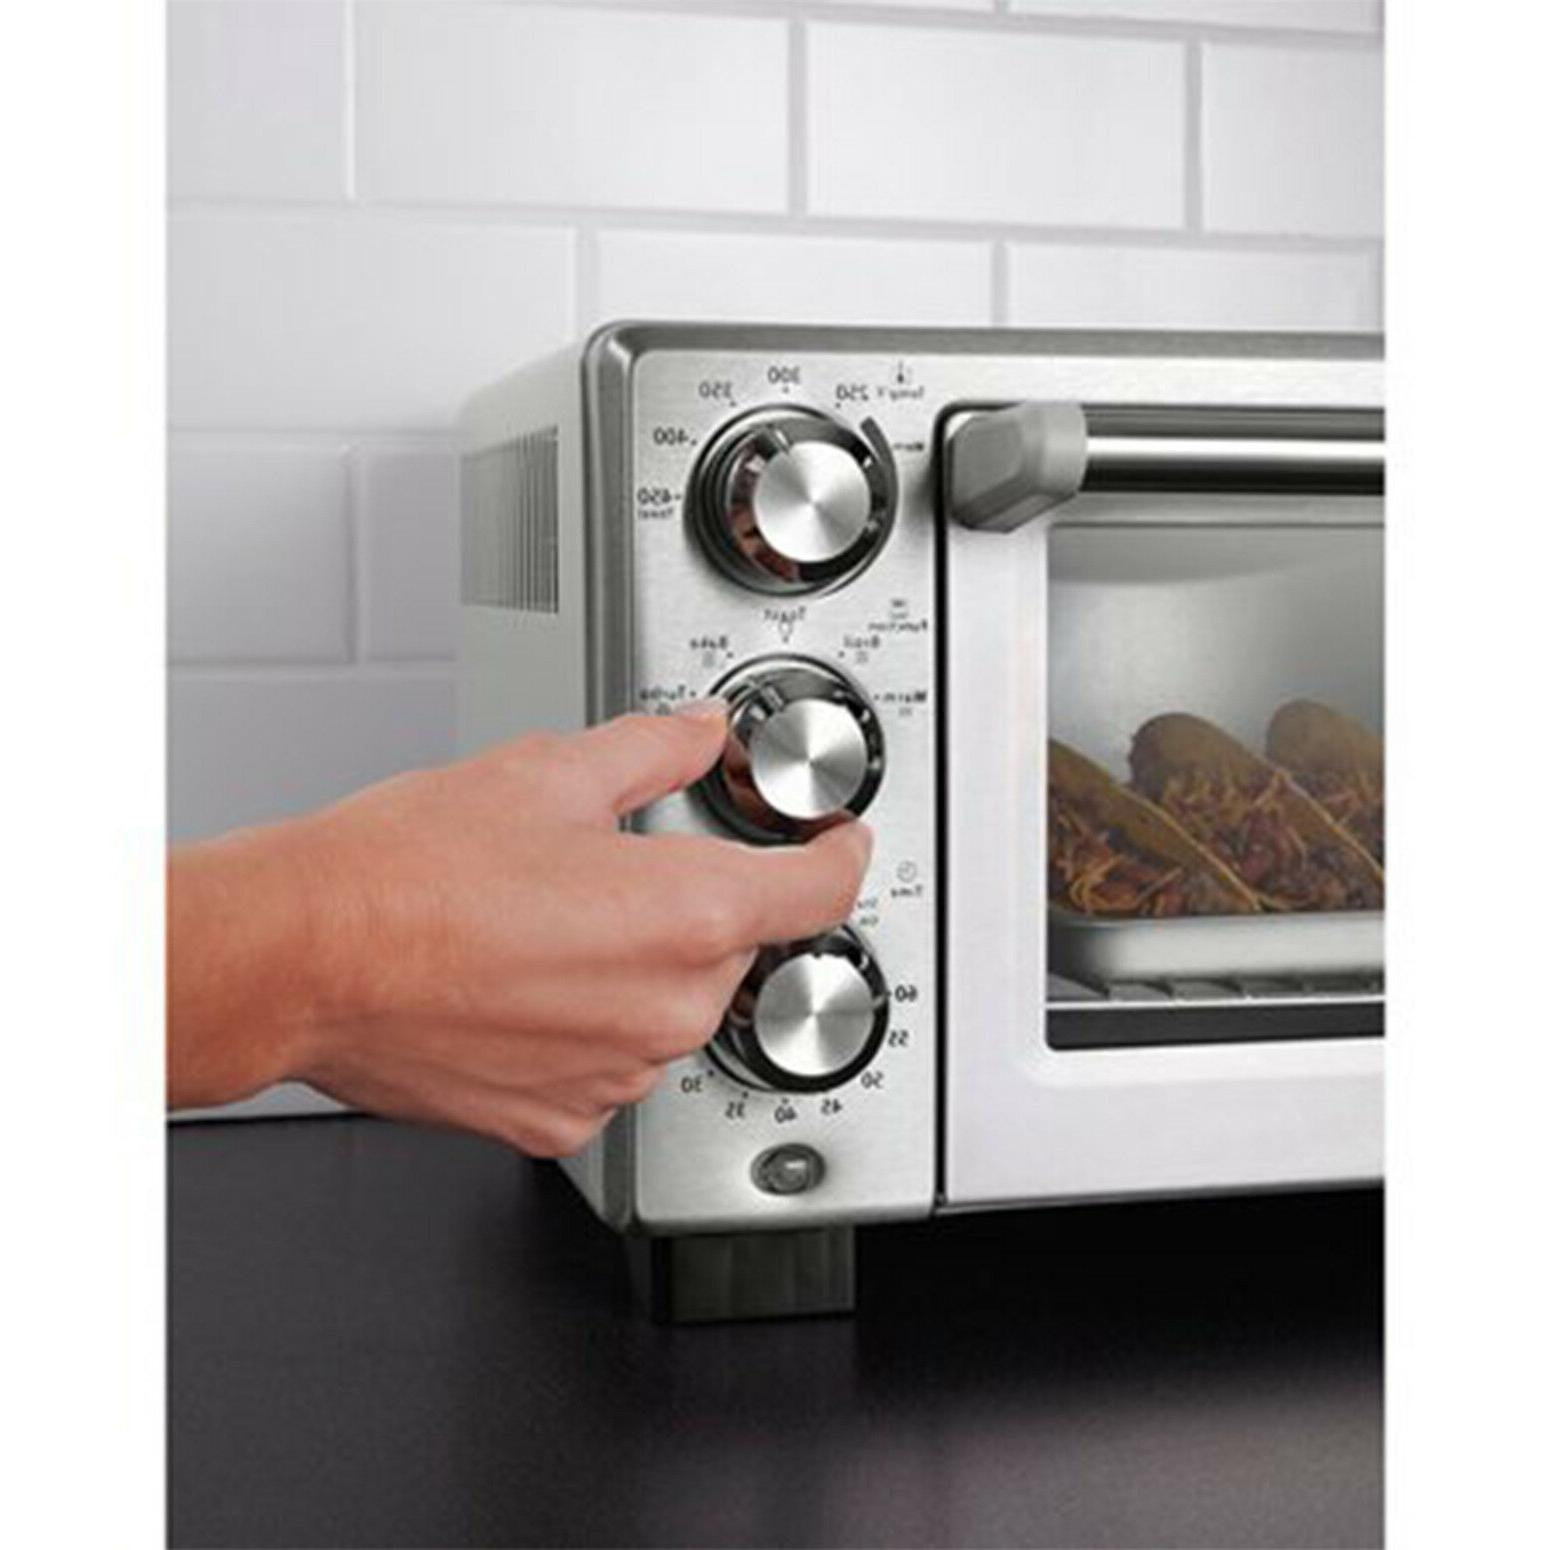 Convection Toaster Oven Slice Family-Size Pizza Cook